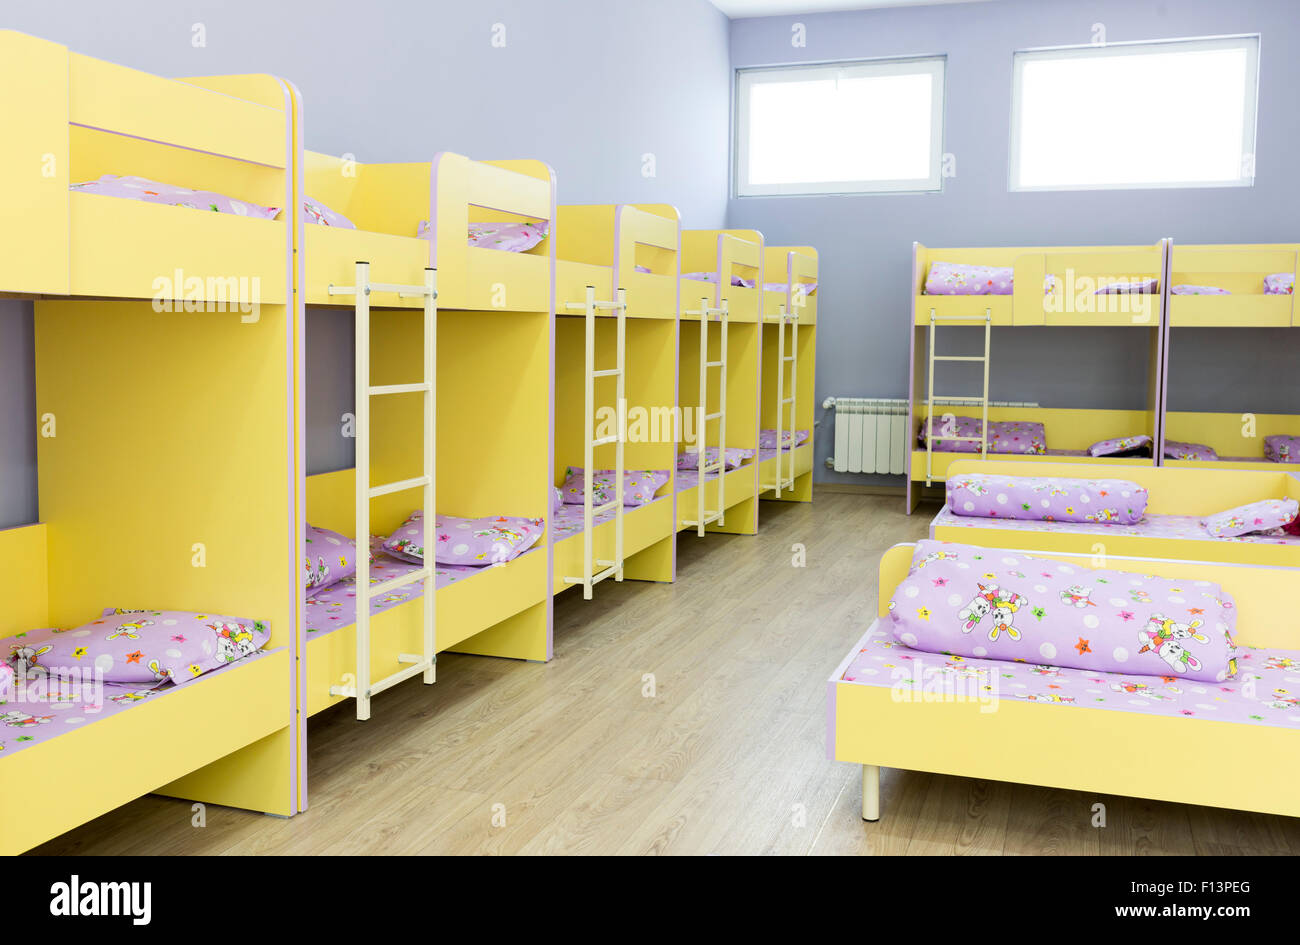 Modern Kindergarten Bedroom With Small Bunk Beds With